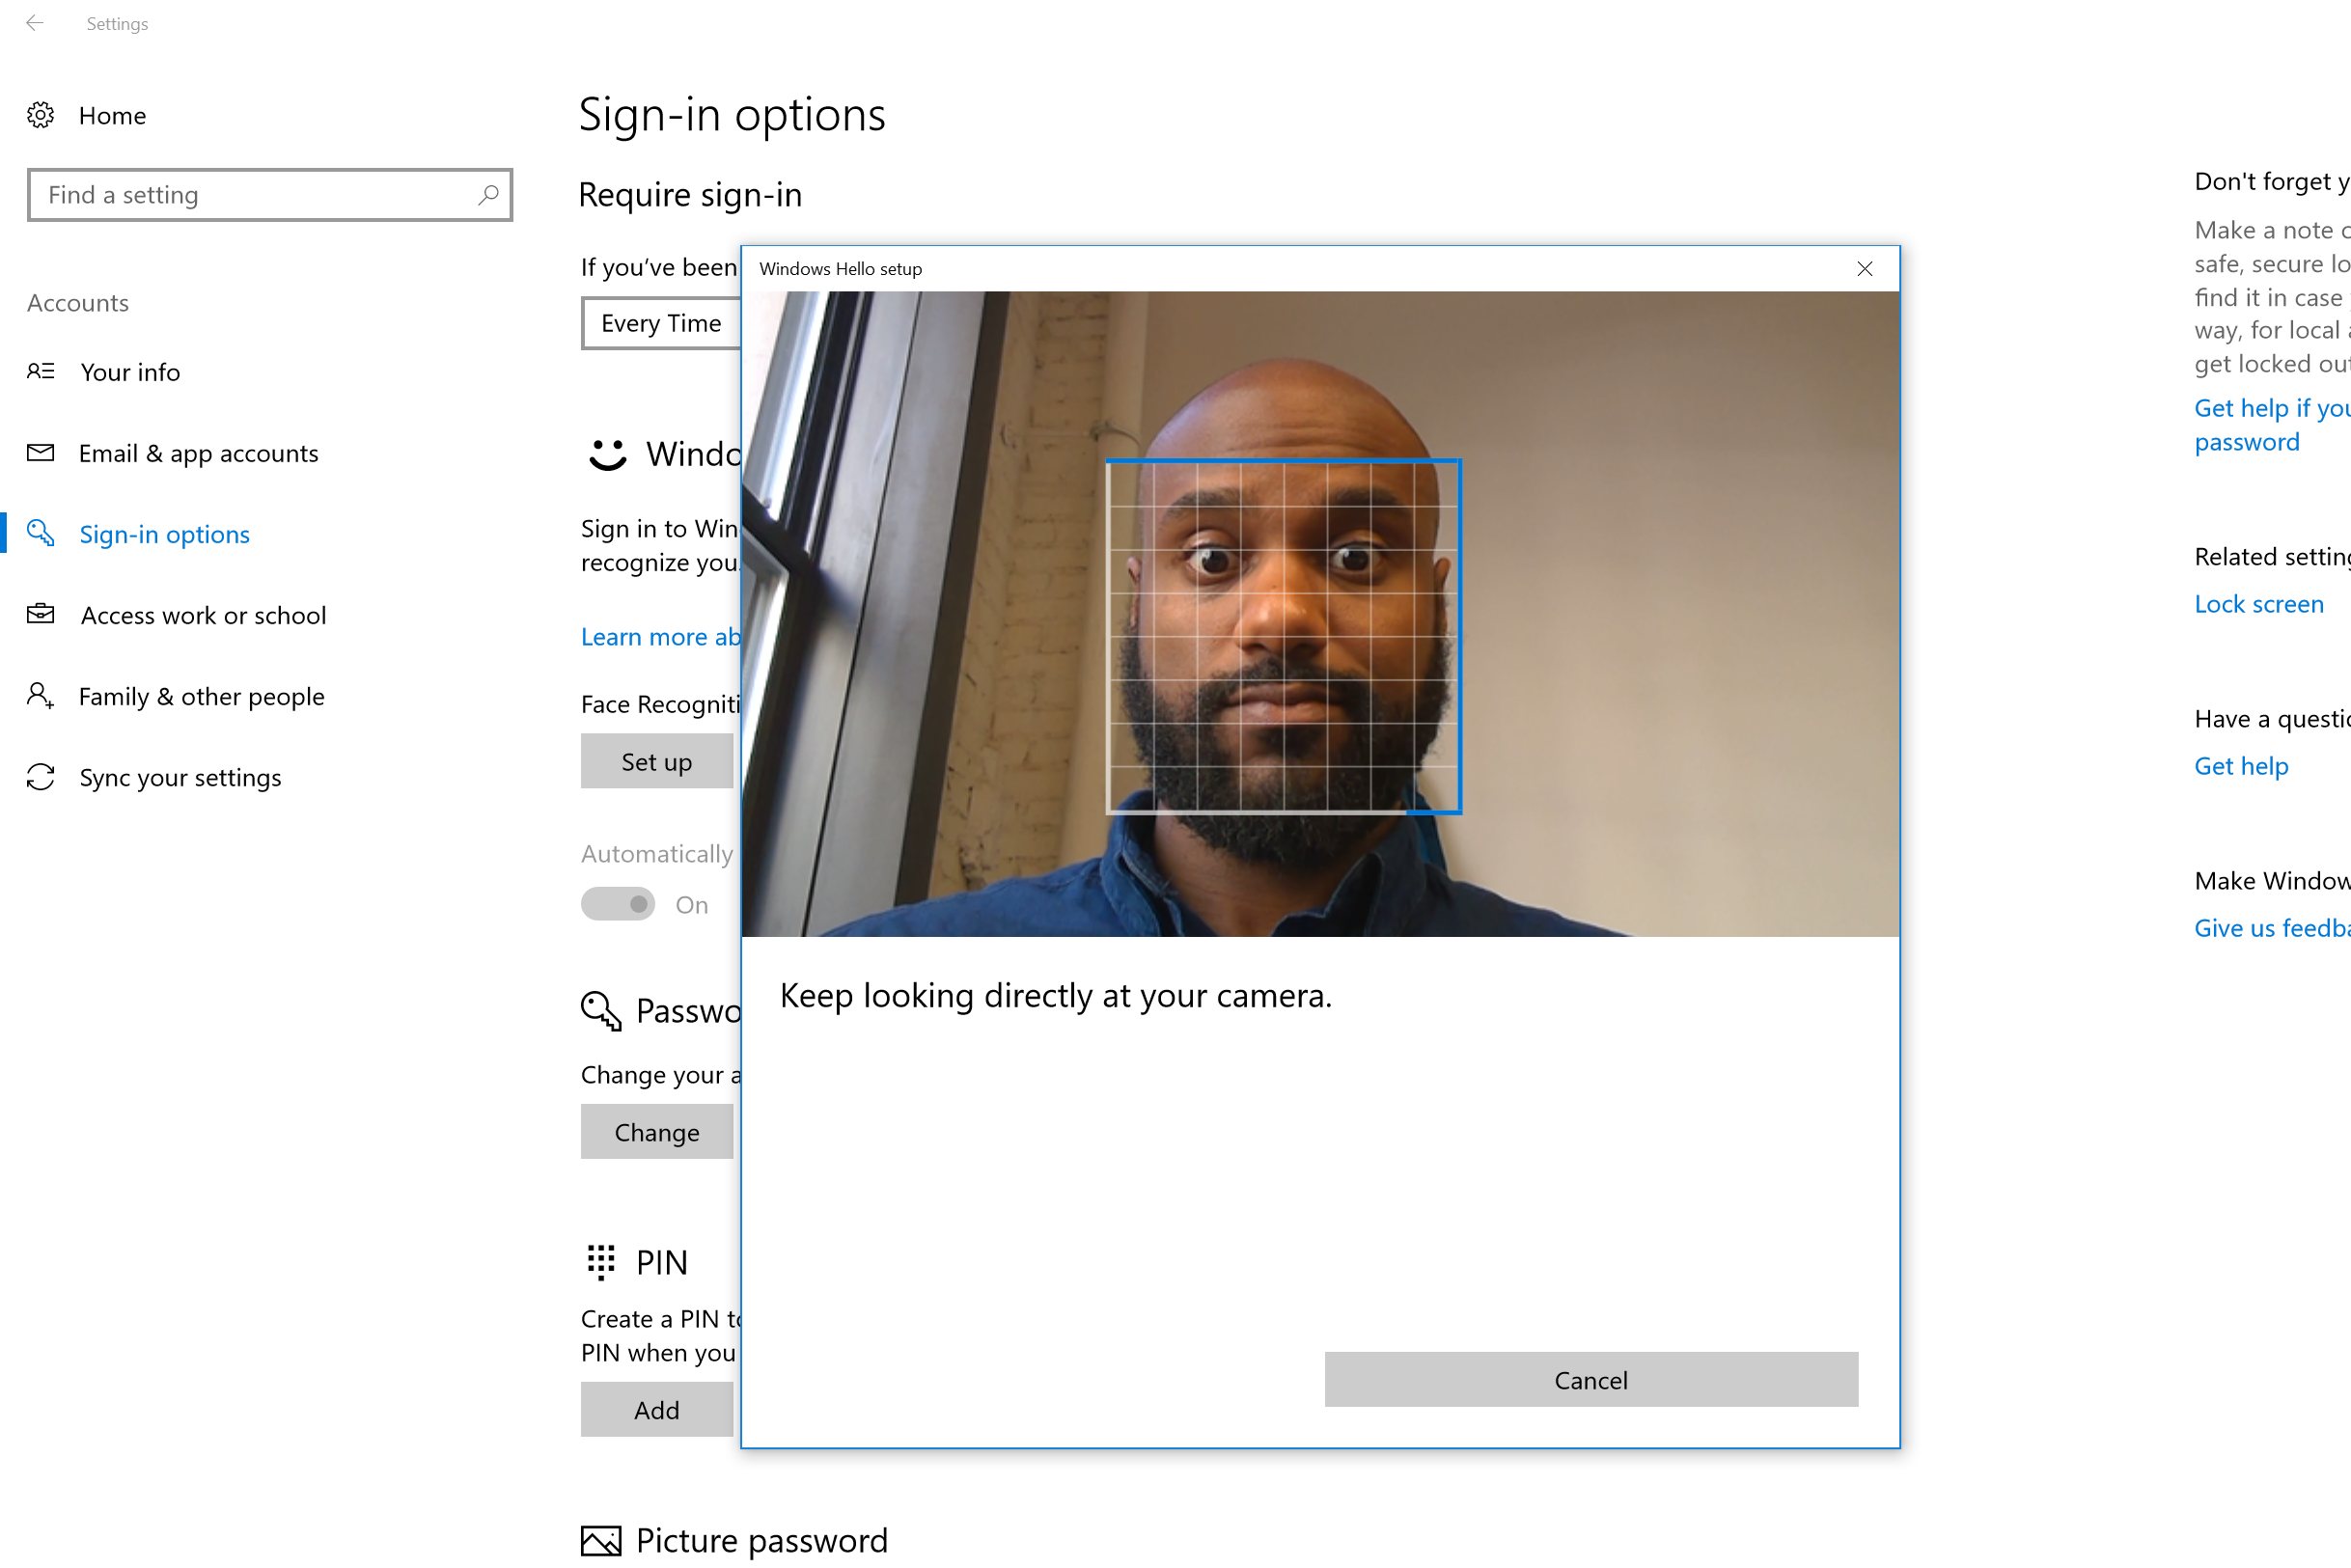 How to Secure Your PC With Windows Hello's Facial Recognition